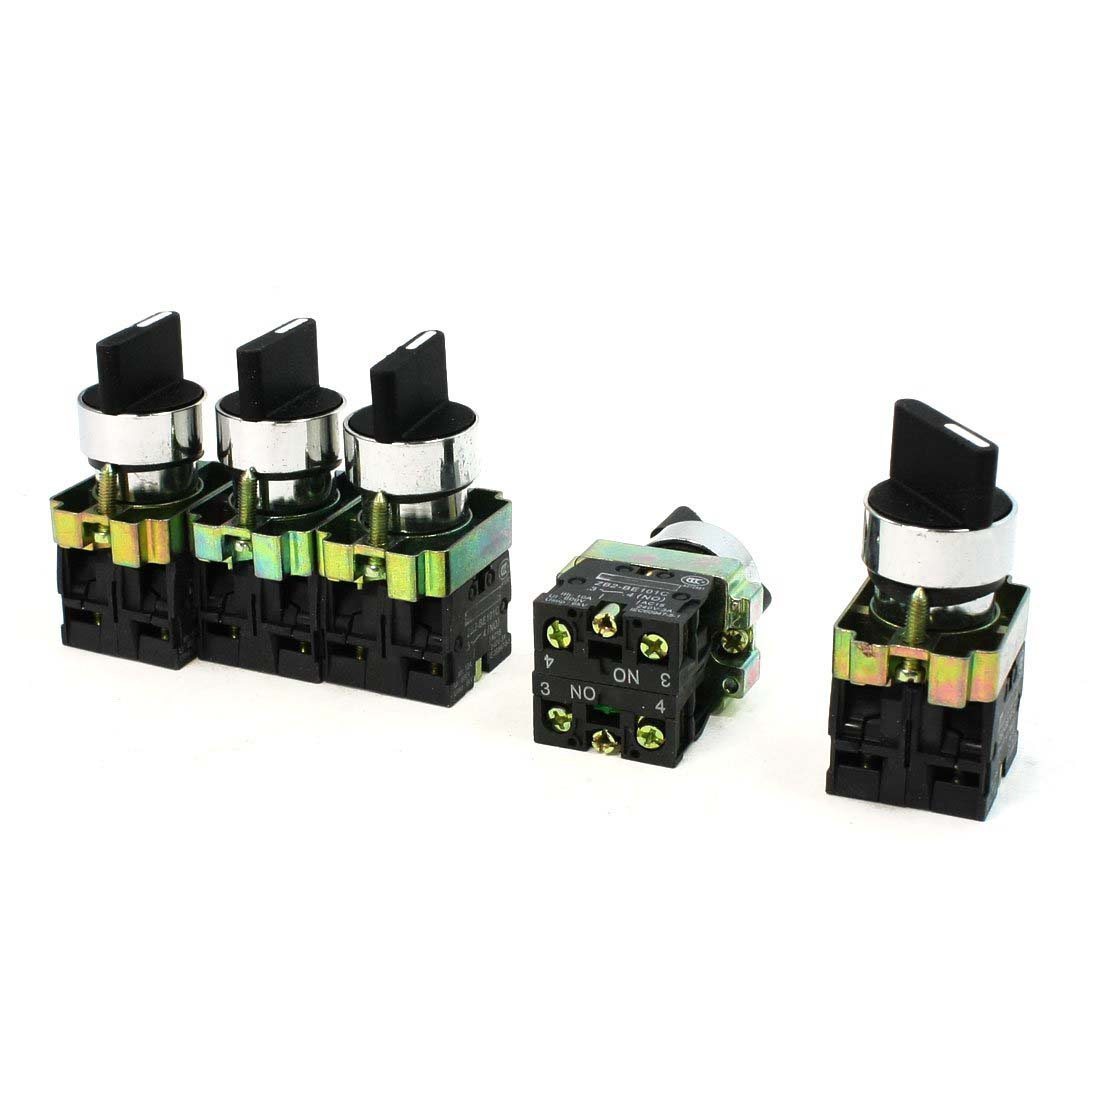 Promotion! 10A Ith 600V Ui Lug Control 4 Terminal 3 Position DPST 2NO Rotary Switch 5Pcs 660v ui 10a ith 8 terminals rotary cam universal changeover combination switch